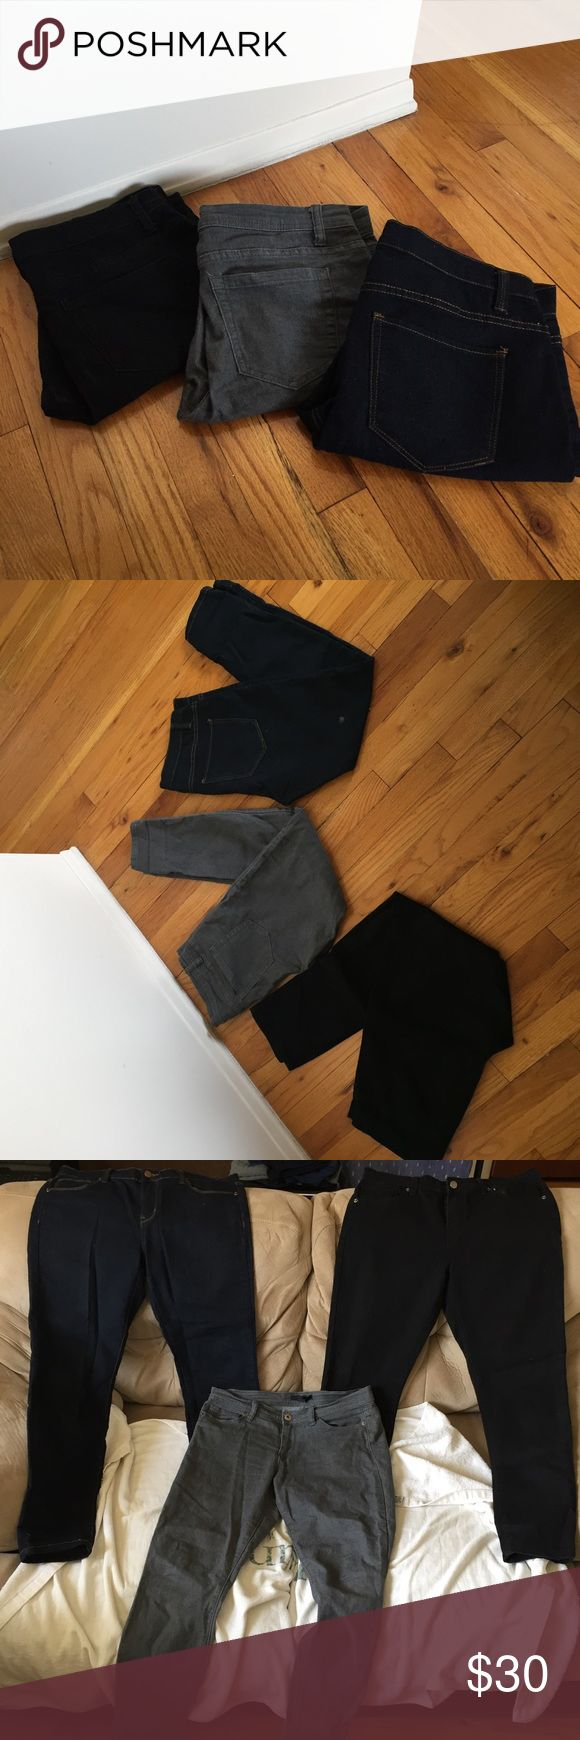 F21 Petite Skinny Jeans Bundle Lot Bundle of 3 pairs of skinny jeans from Forever 21. Includes a black pair, a dark blue pair (both size 30) and a gray pair (size 29). The inseams on all of them are 30 inches, so these would best fit someone Petite (I'm 5'1). All good condition, the black and blue pairs were barely worn. Forever 21 Jeans Skinny